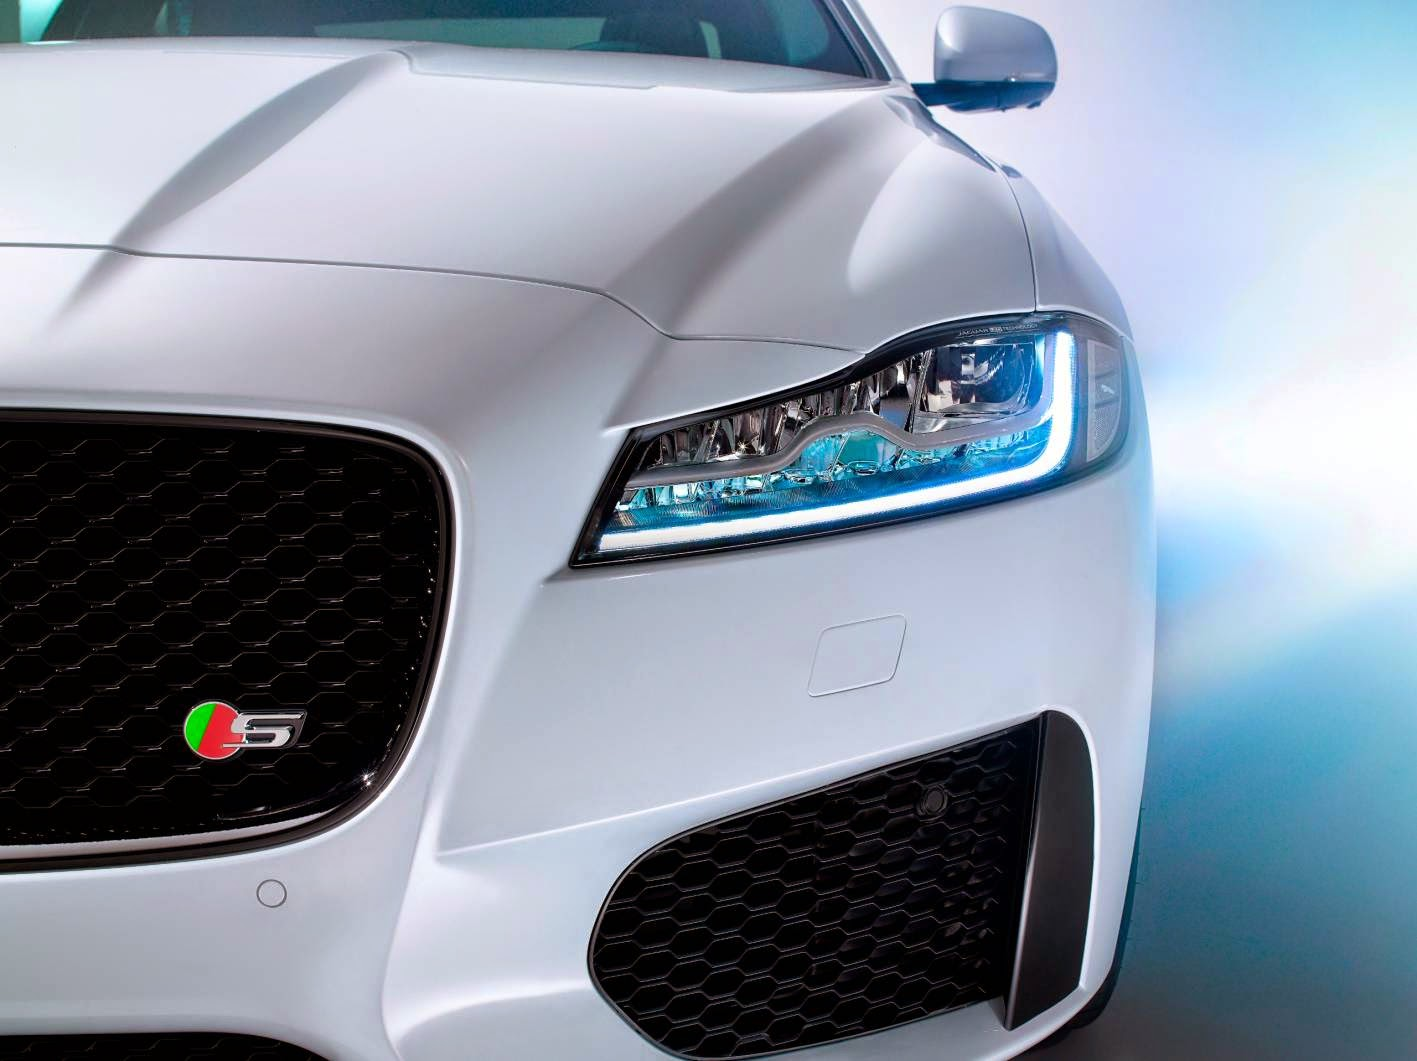 New Jaguar XF close up front